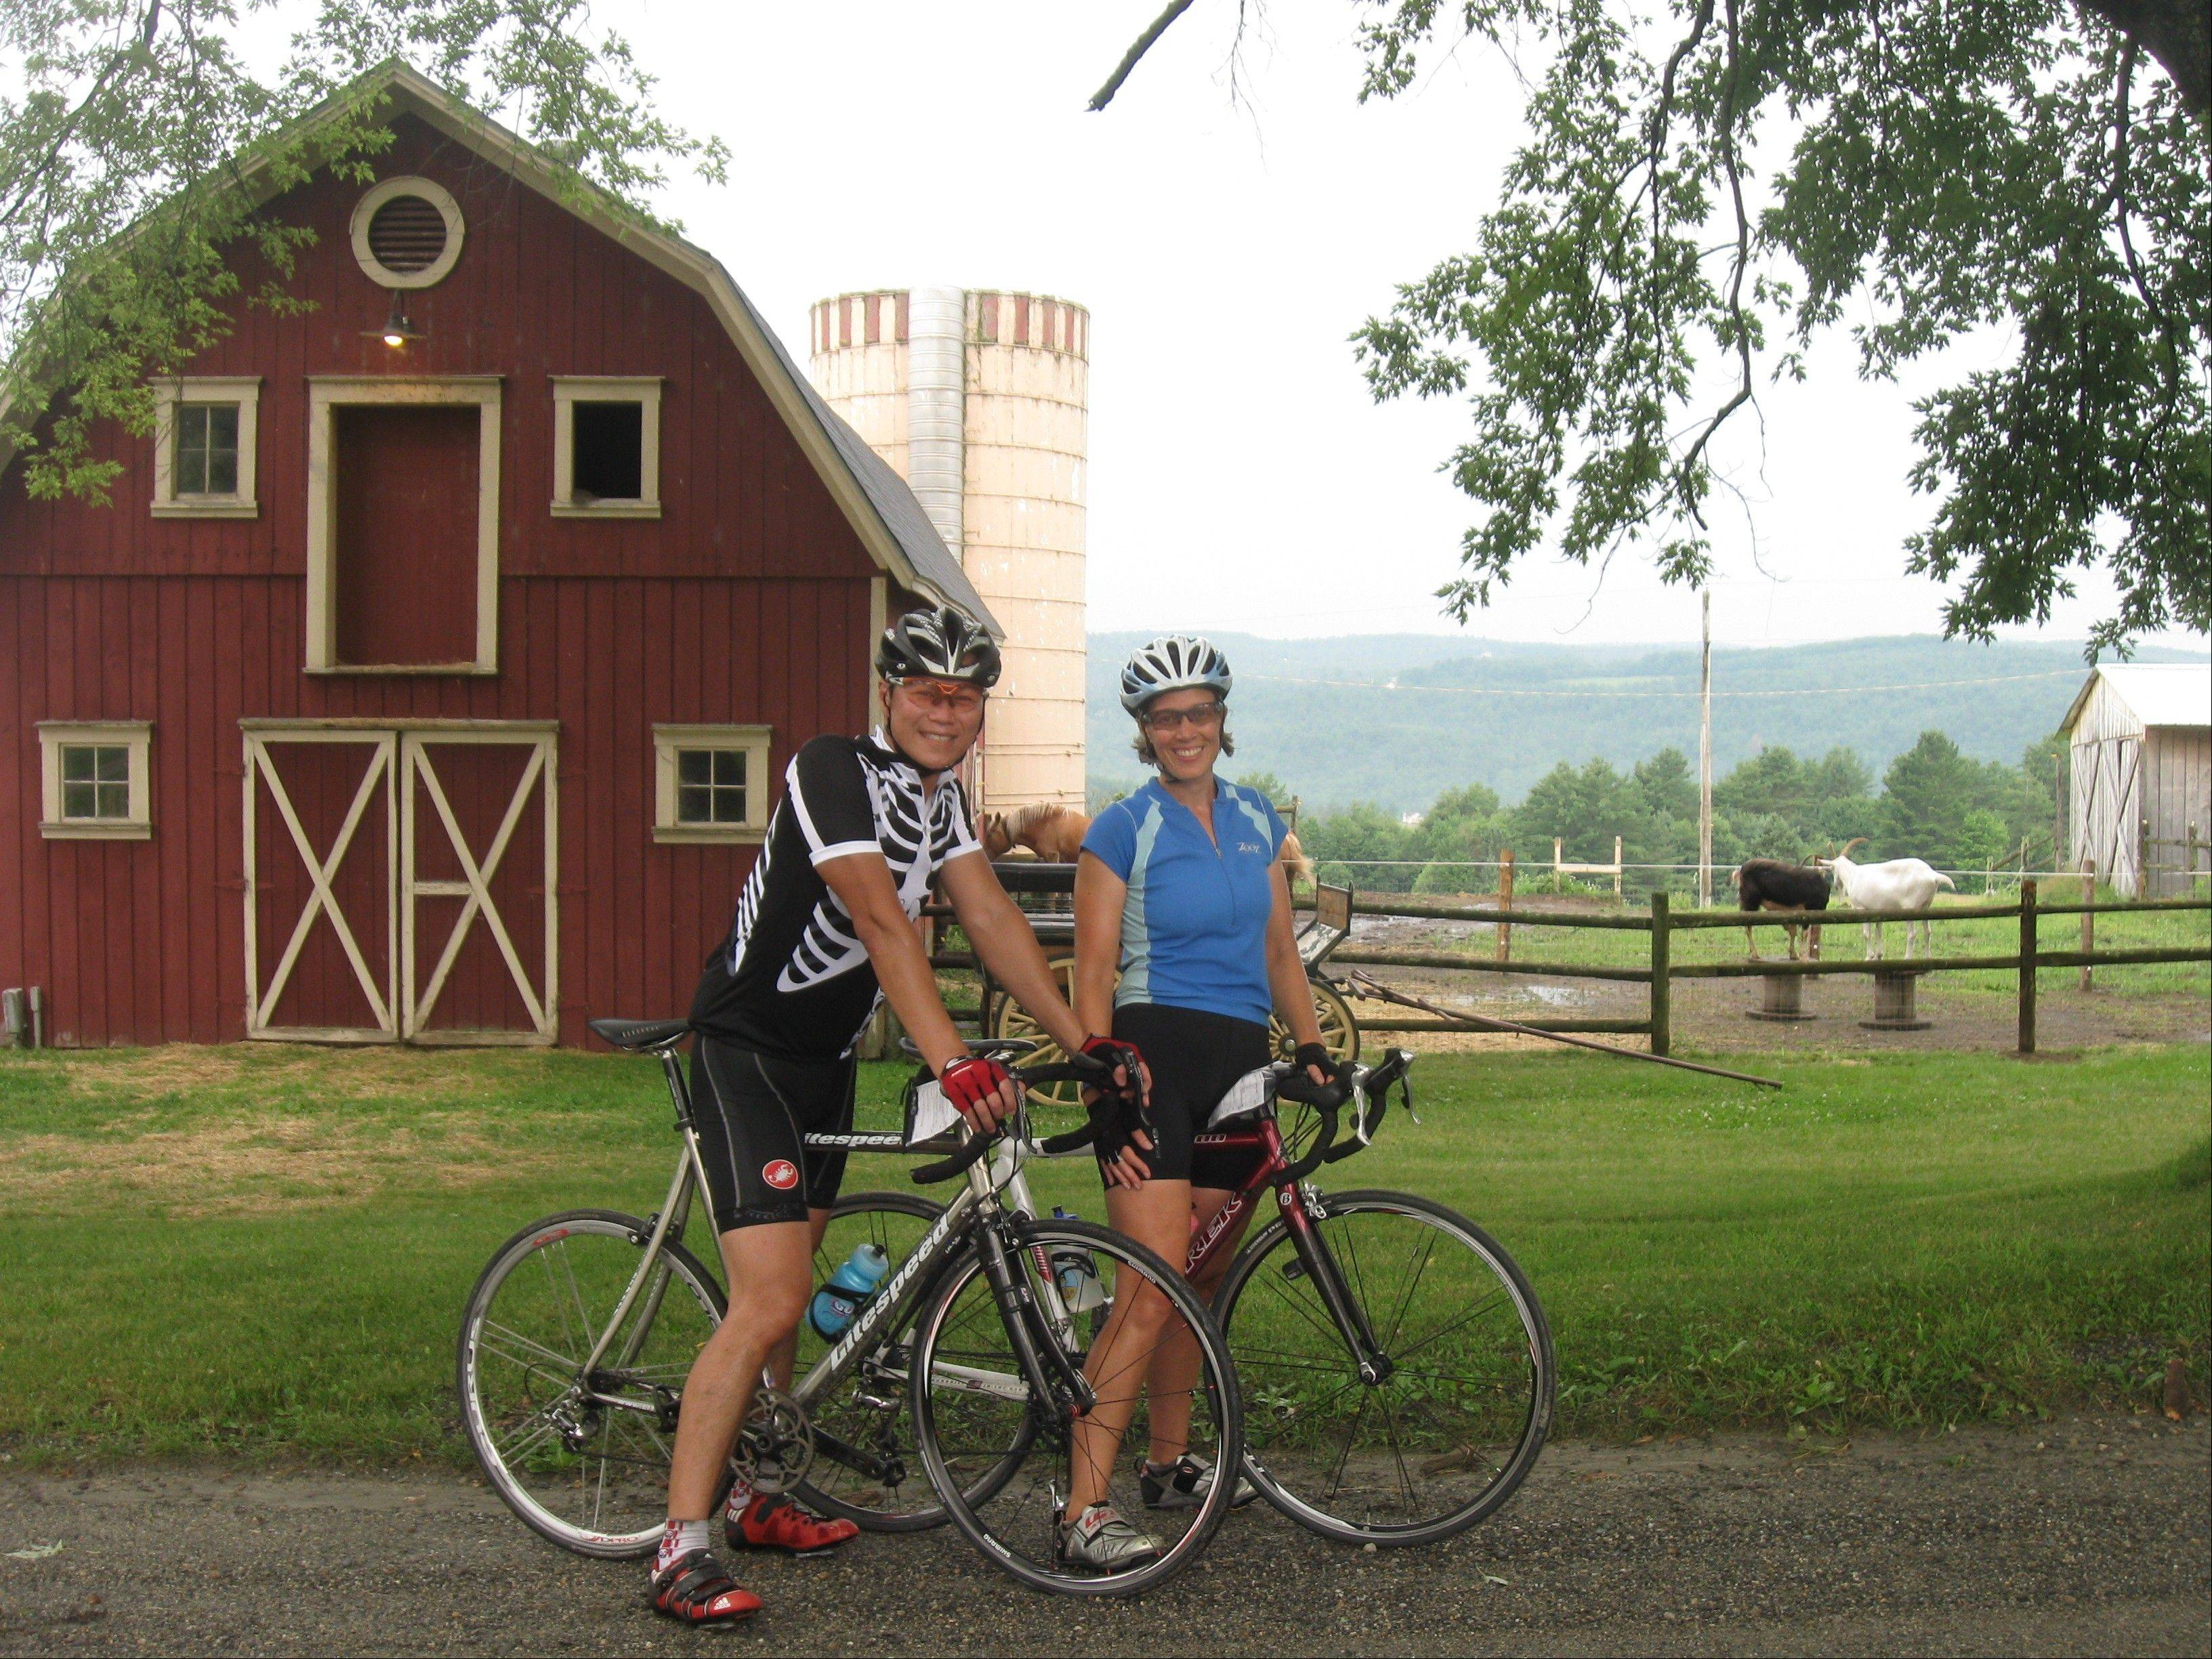 Participants enjoy the Vermont Bike & Brew Tour, which takes bikers on a scenic six-day, five-night trip to visit craft breweries.